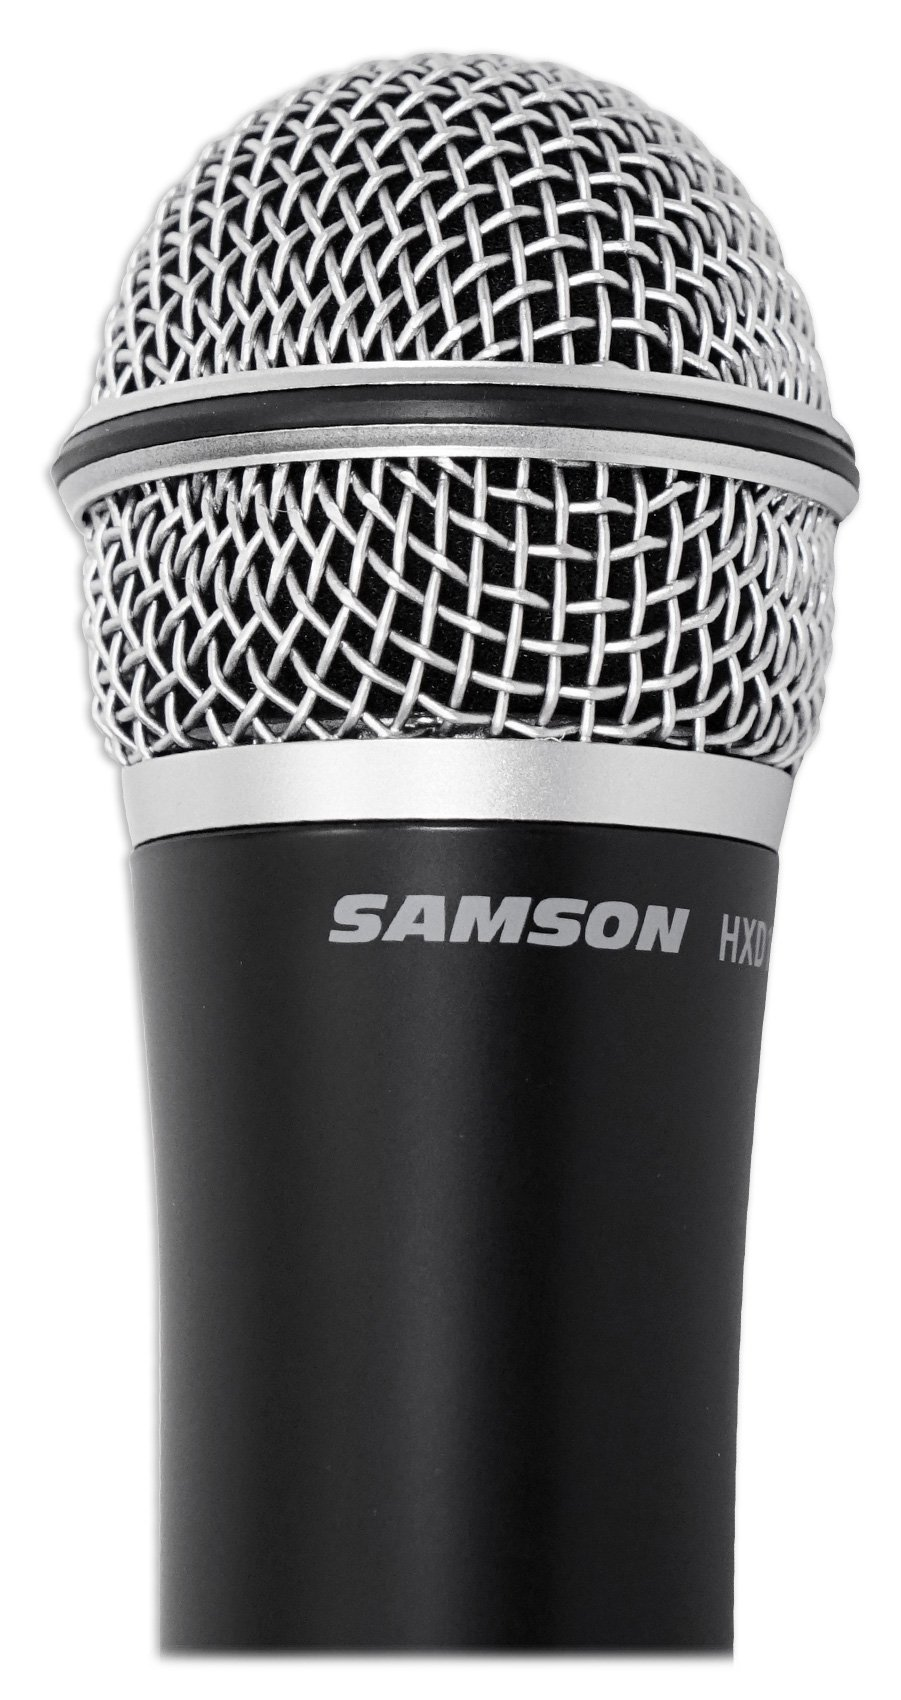 Samson 6'' Portable Rechargeable Speaker+Mic For Workout, Yoga, Spin, Fitness by Samson Technologies (Image #8)